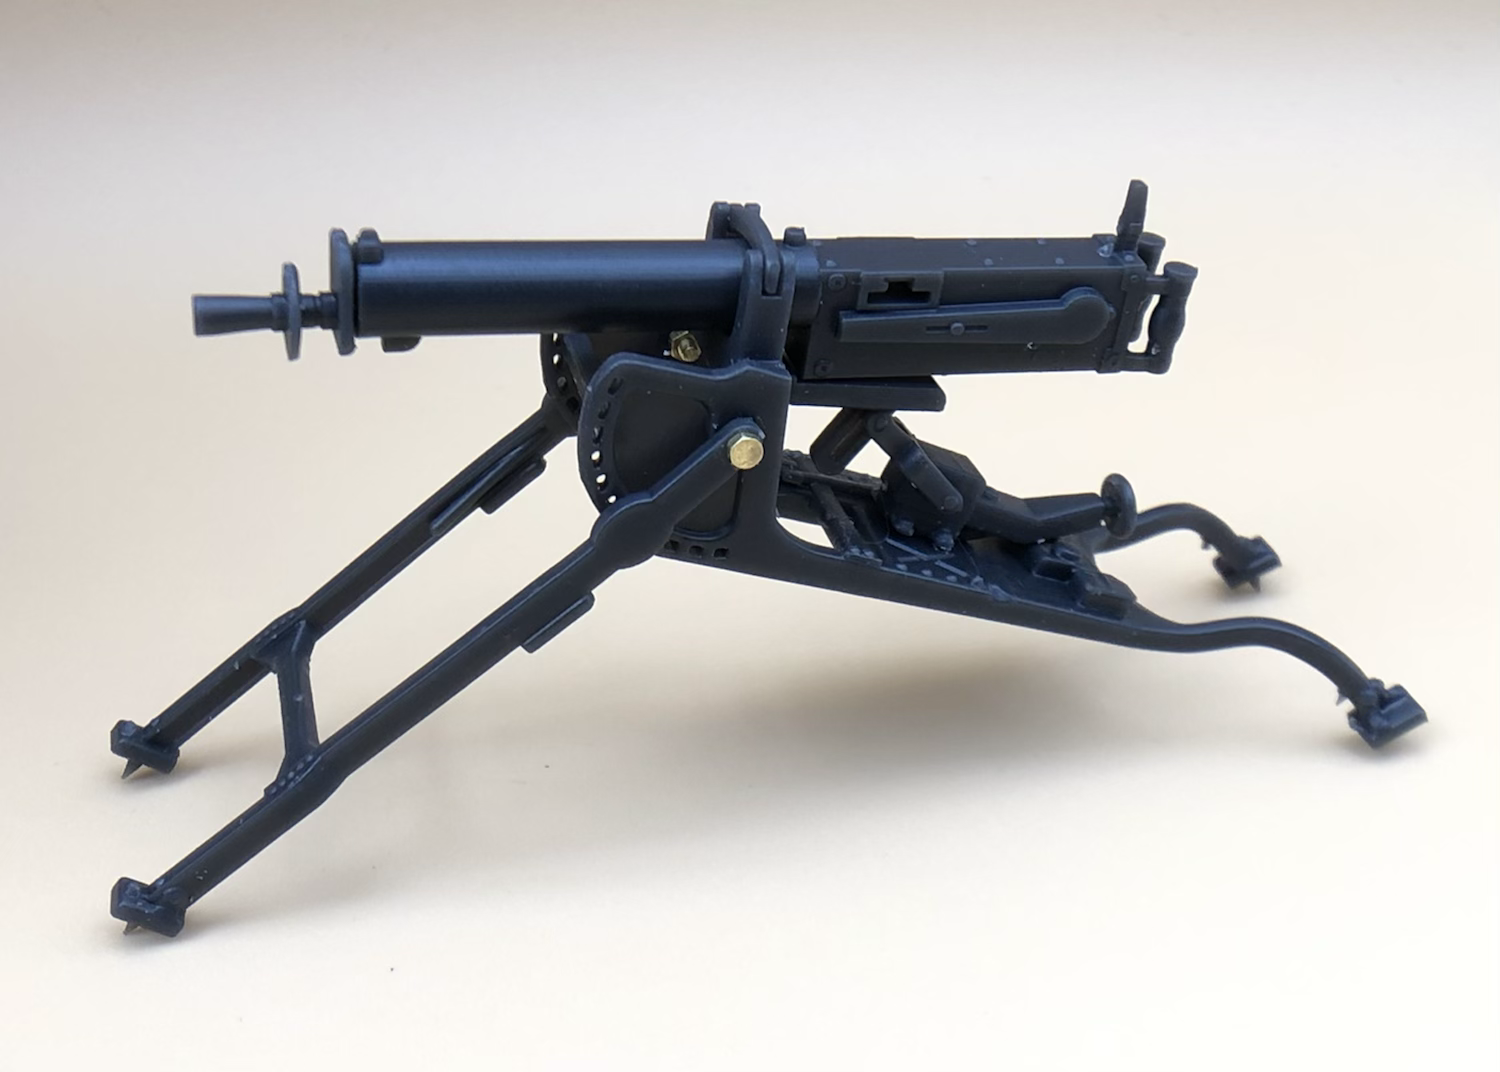 MG08 with Sled